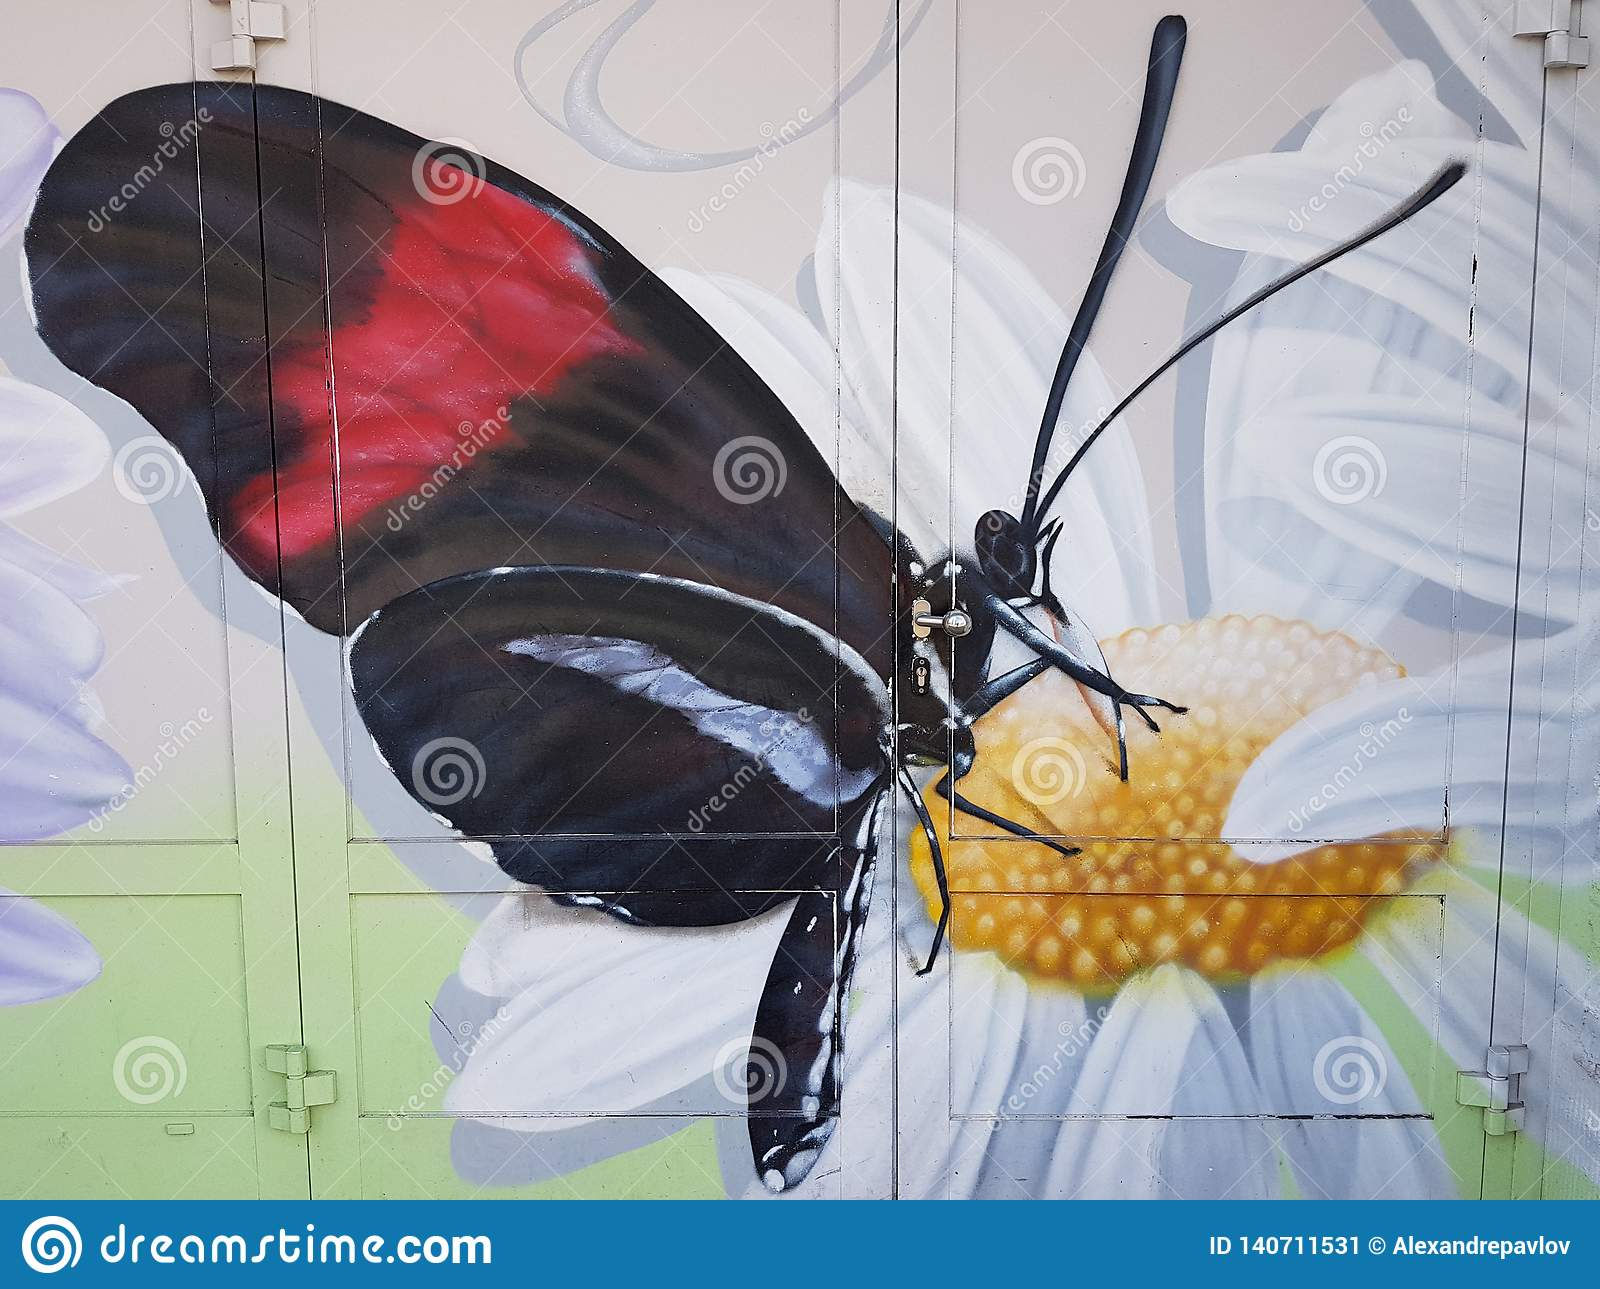 Butterfly on a camomile, graffiti on house doors, an entrance to the utility room